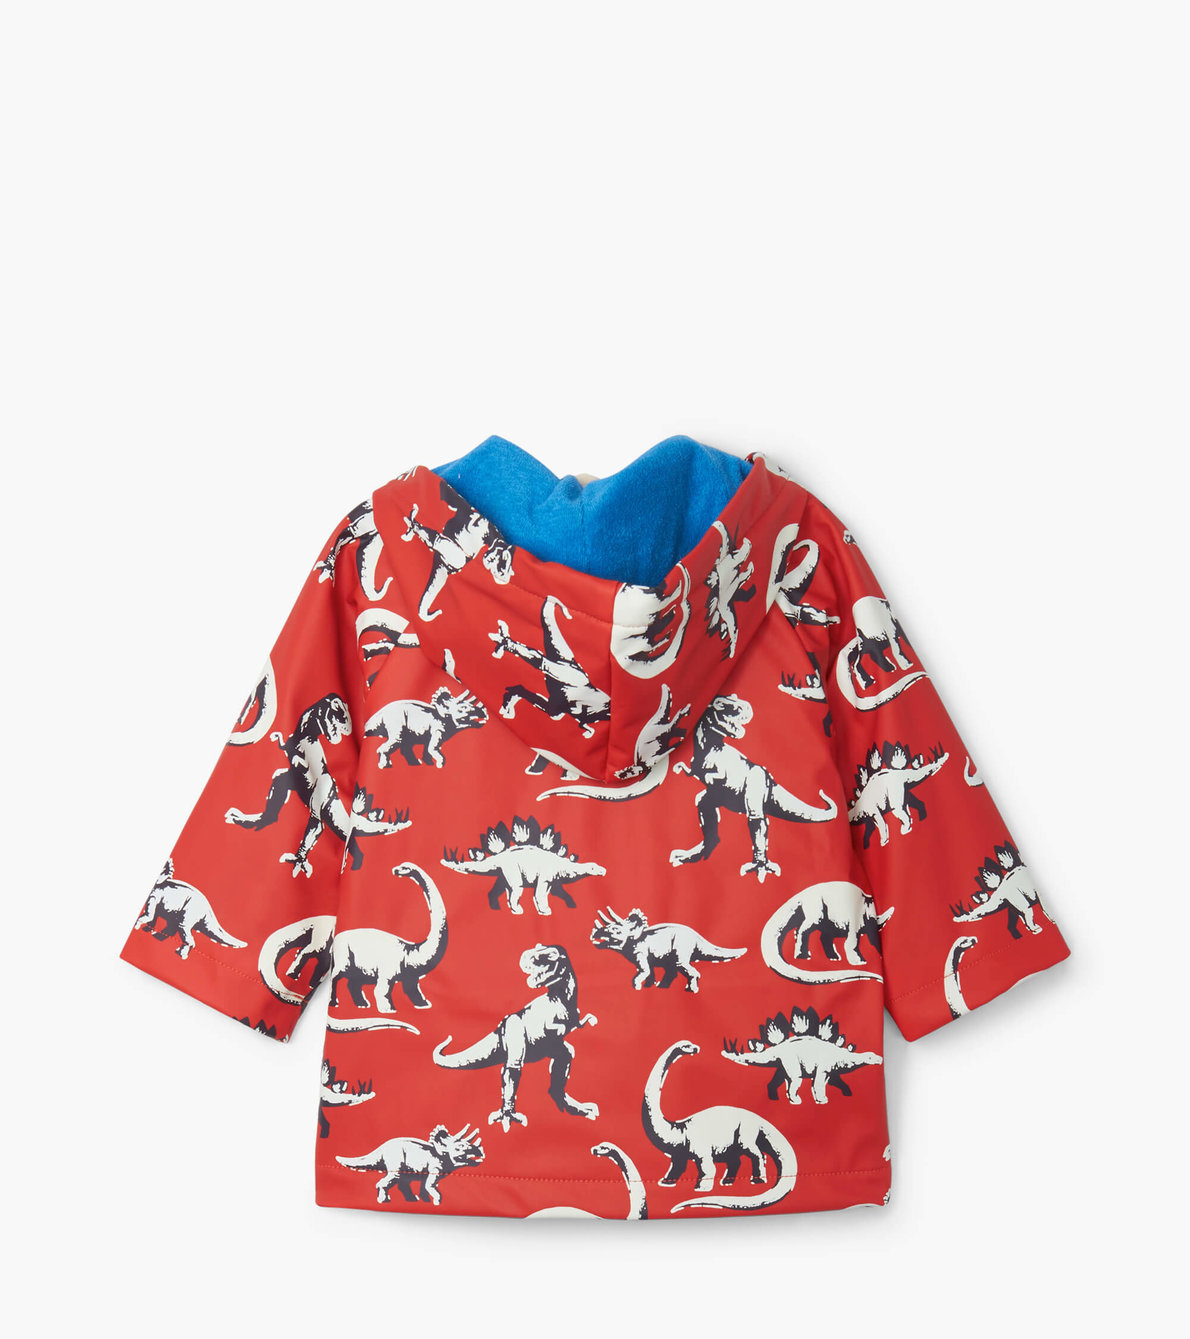 View larger image of Painted Dinos Colour Changing Baby Raincoat